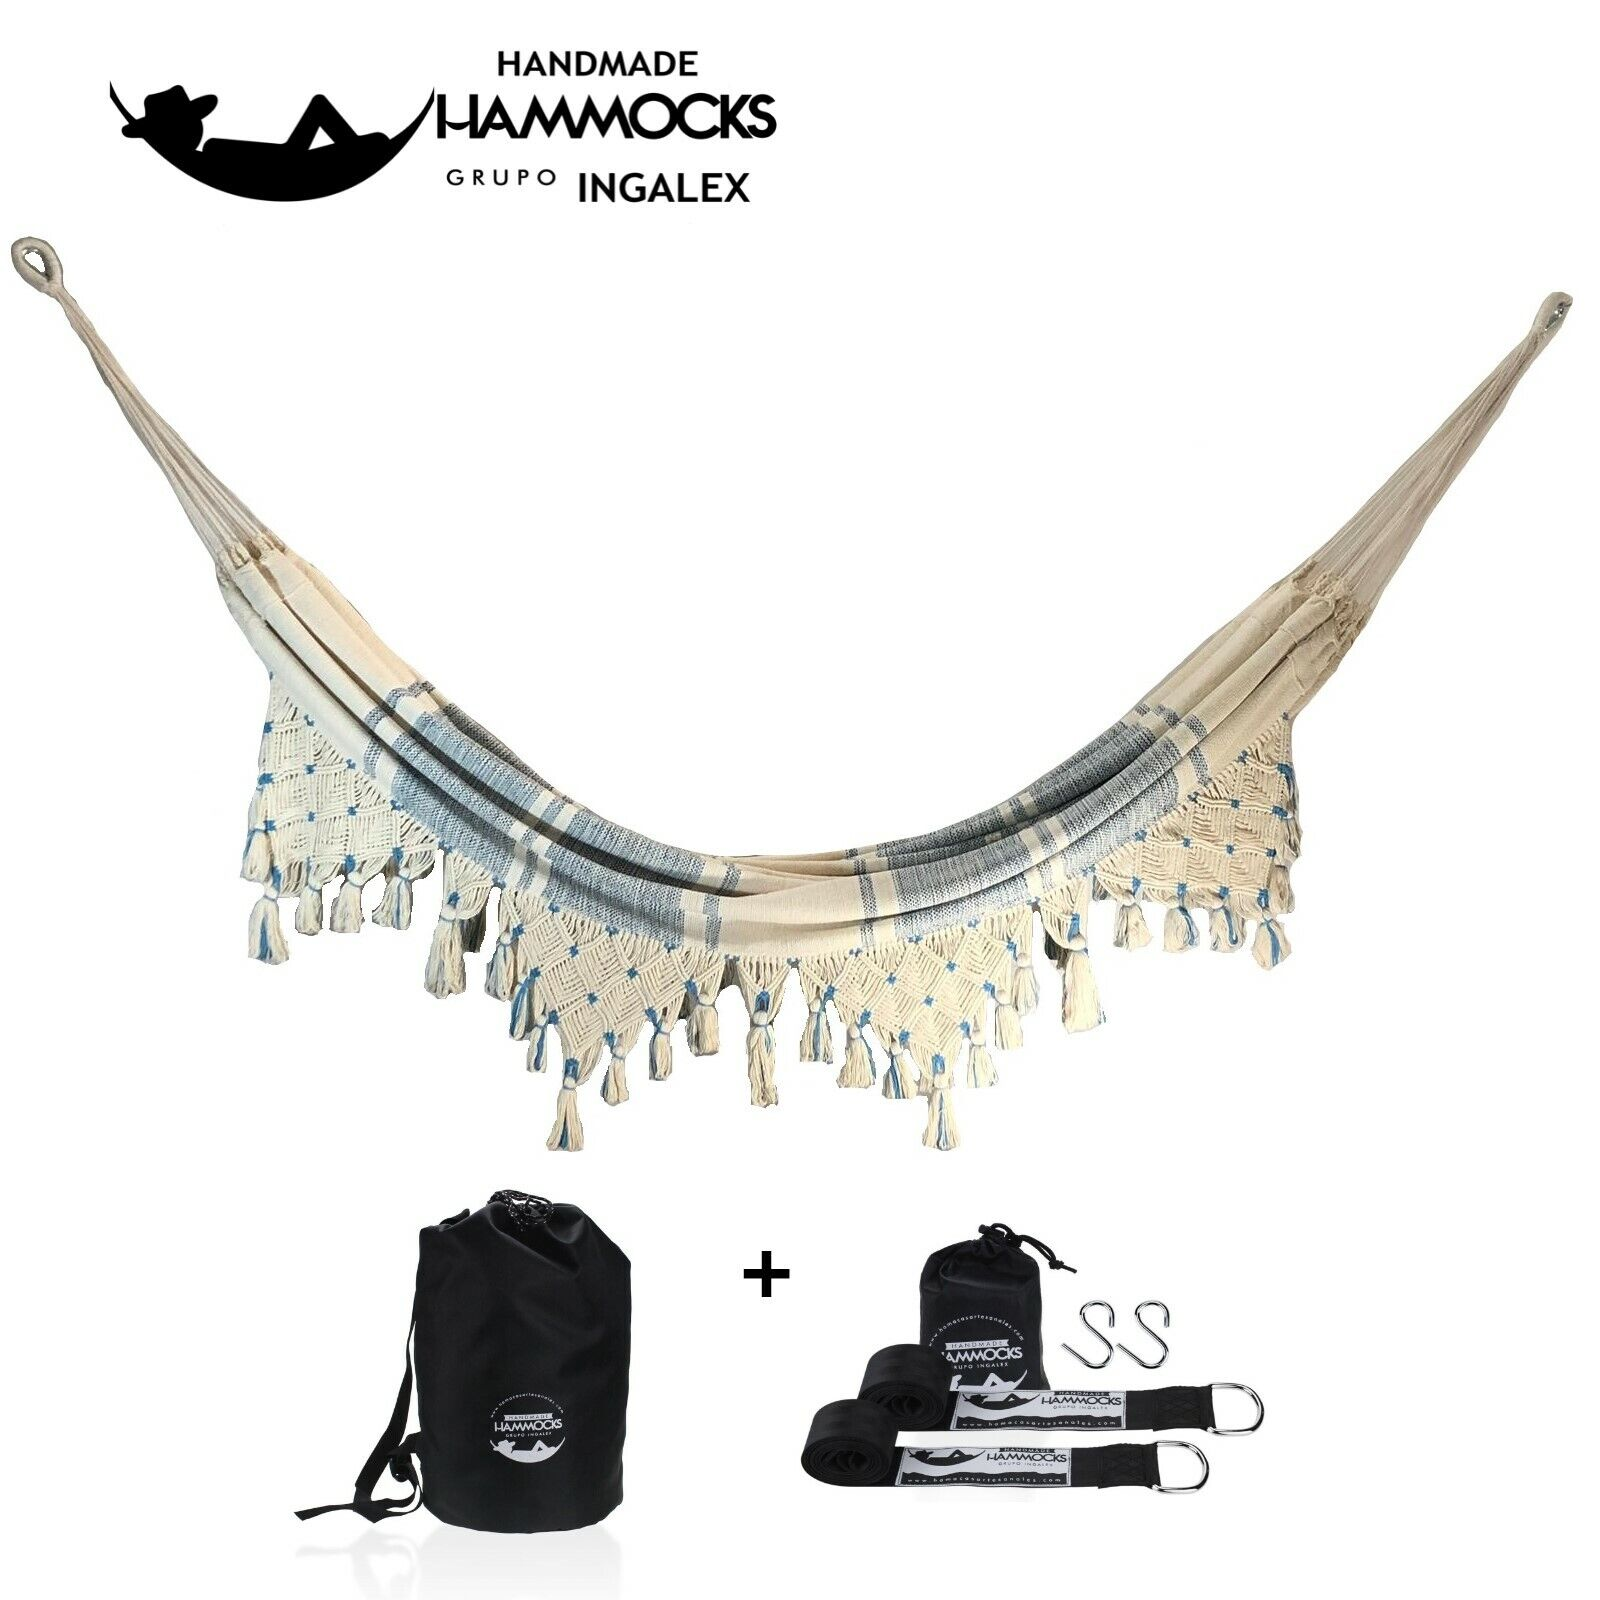 MACA AMACA Hammock with Hanging Strap and Carry Bag Soft Wov